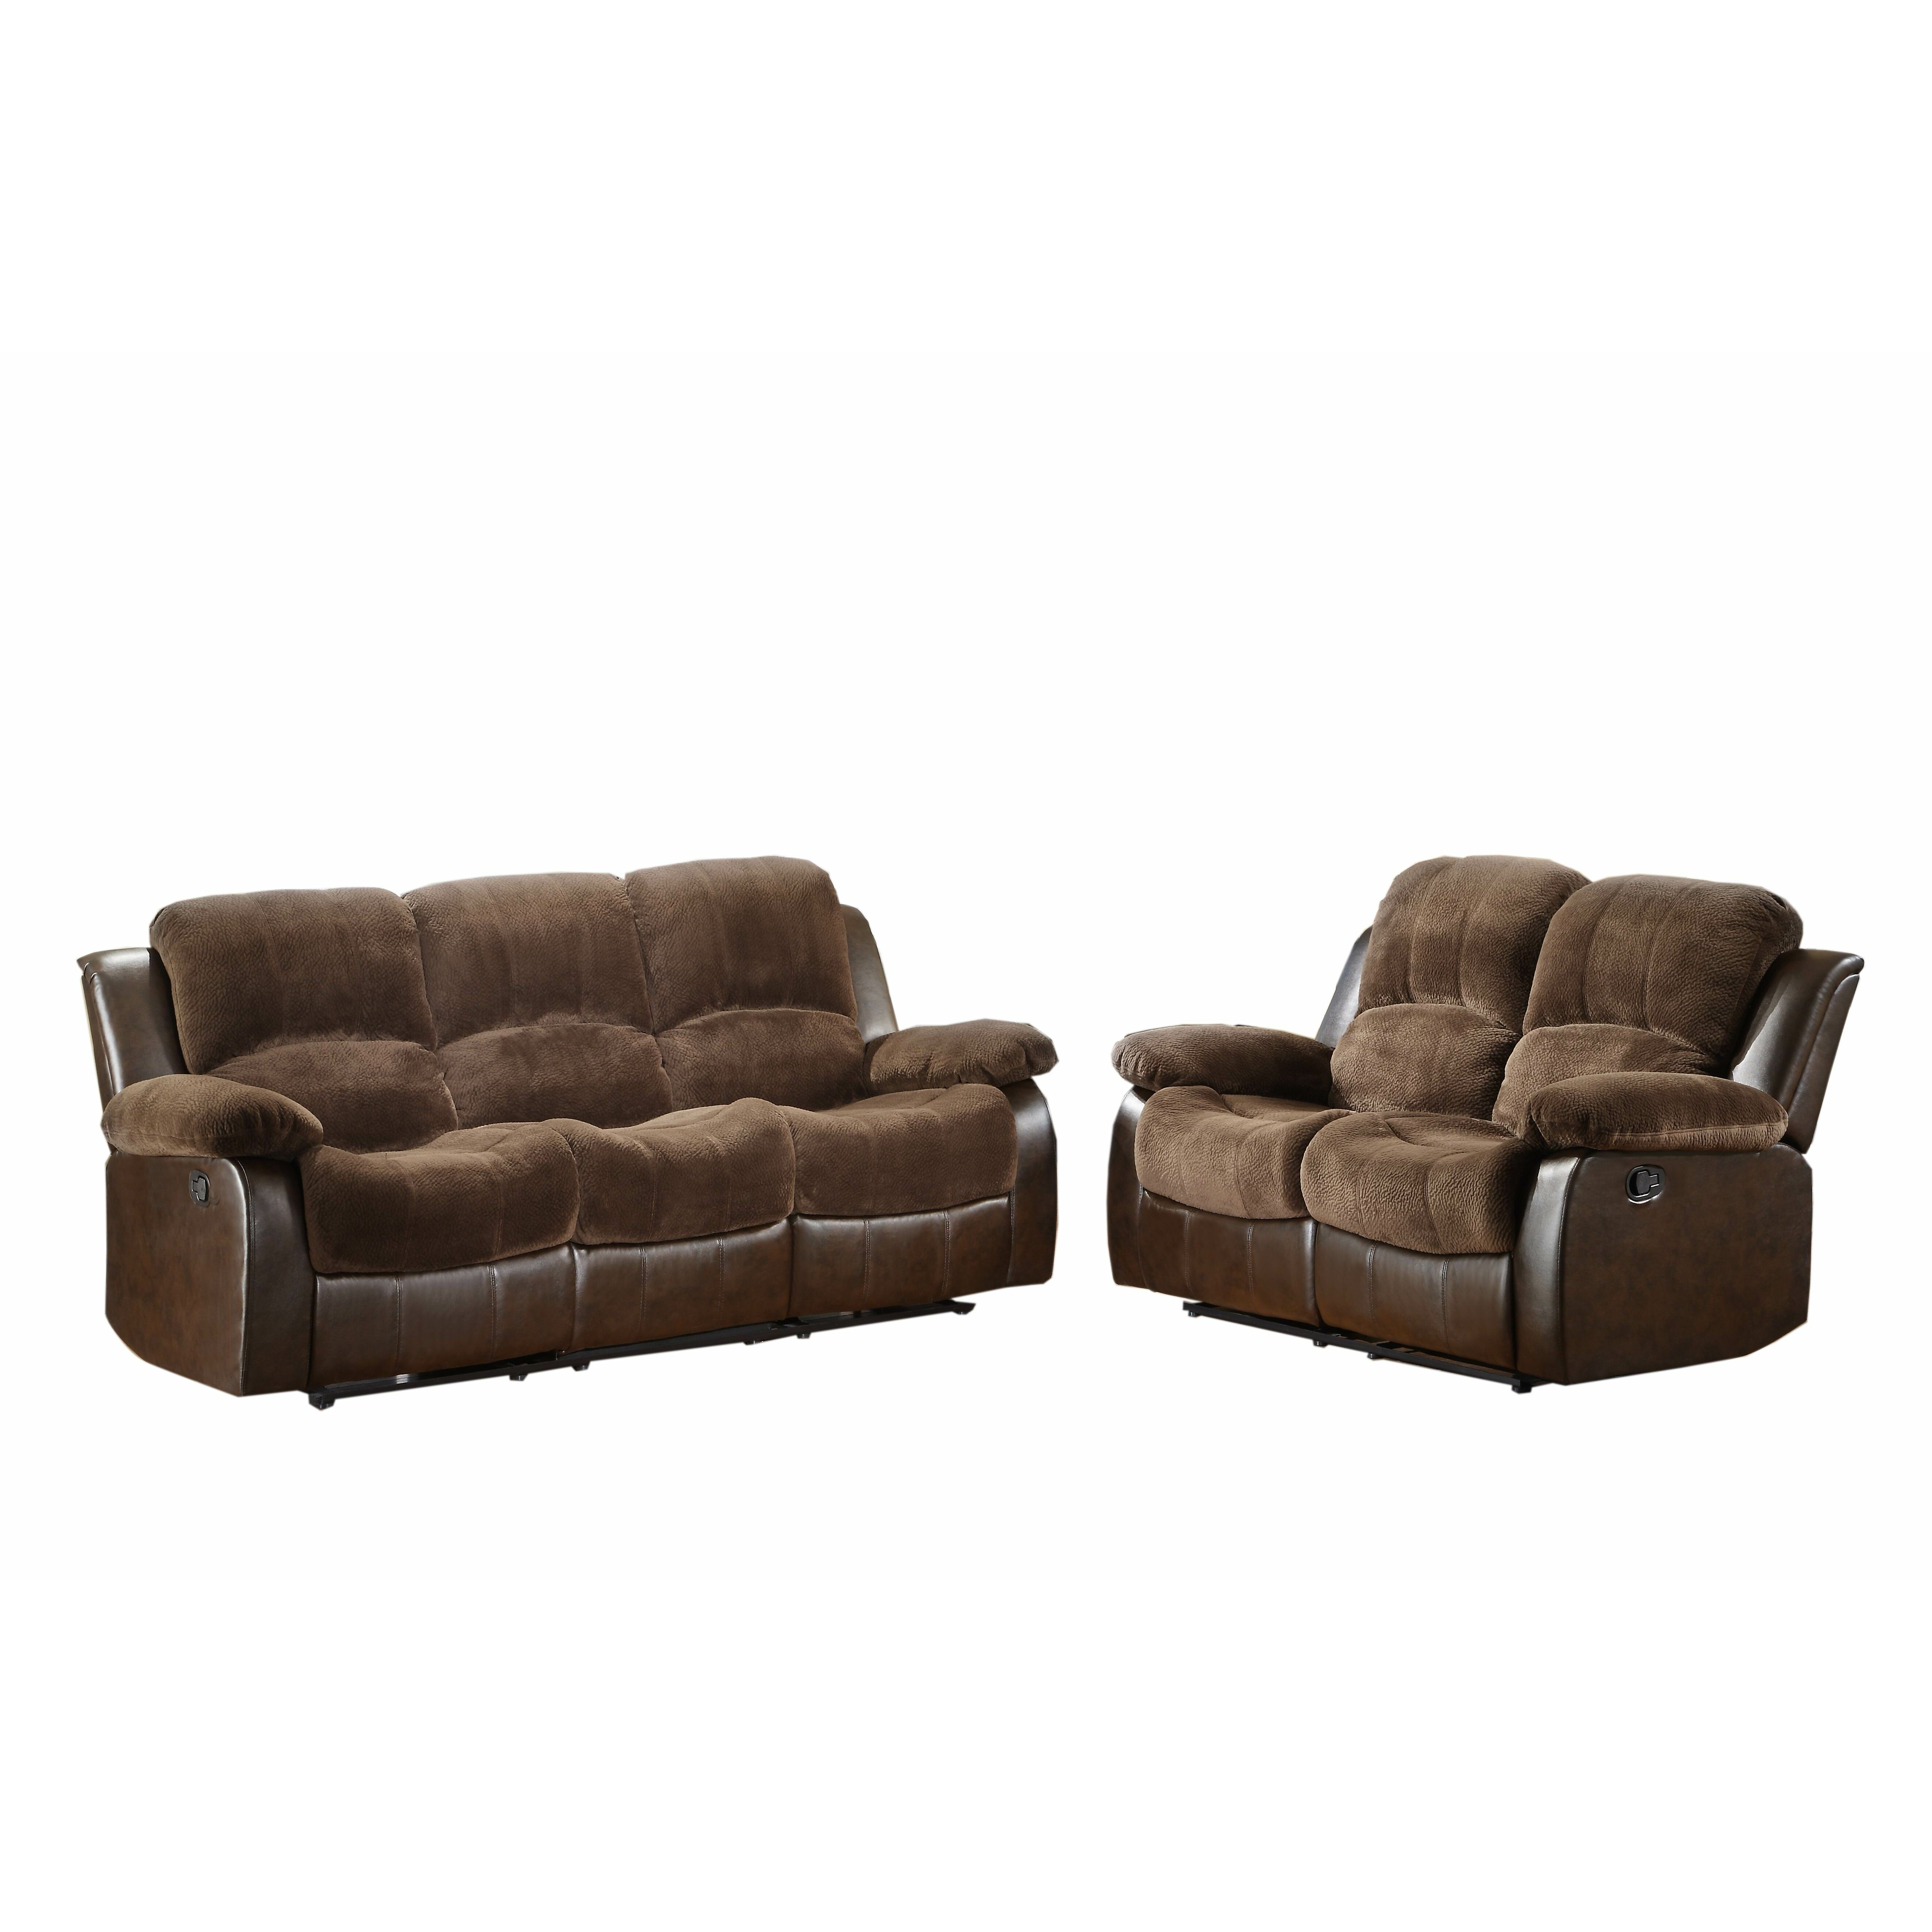 Woodhaven Hill Cranley Double Reclining Loveseat Reviews Wayfair